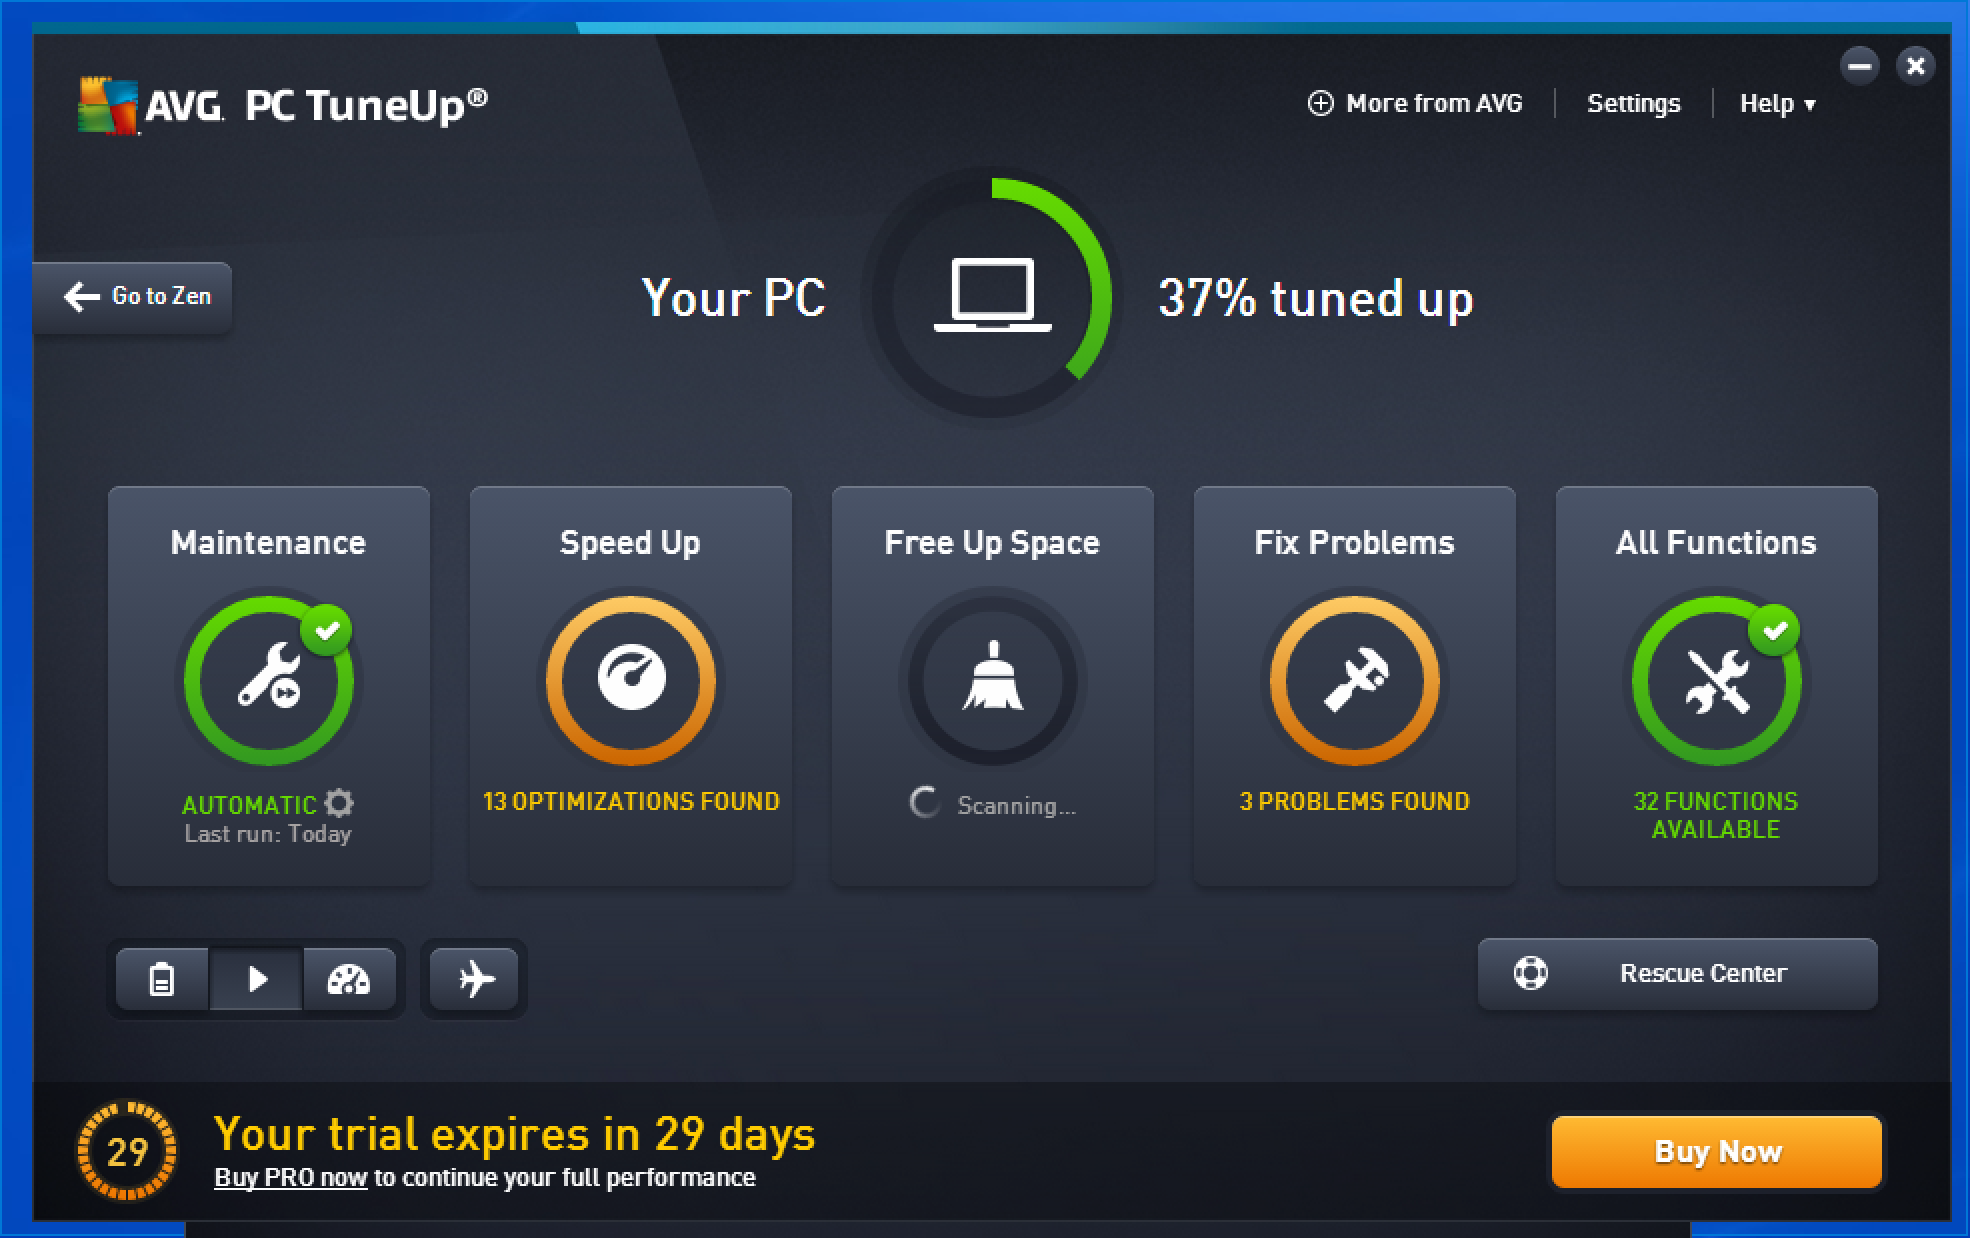 avg pc tuneup main screen